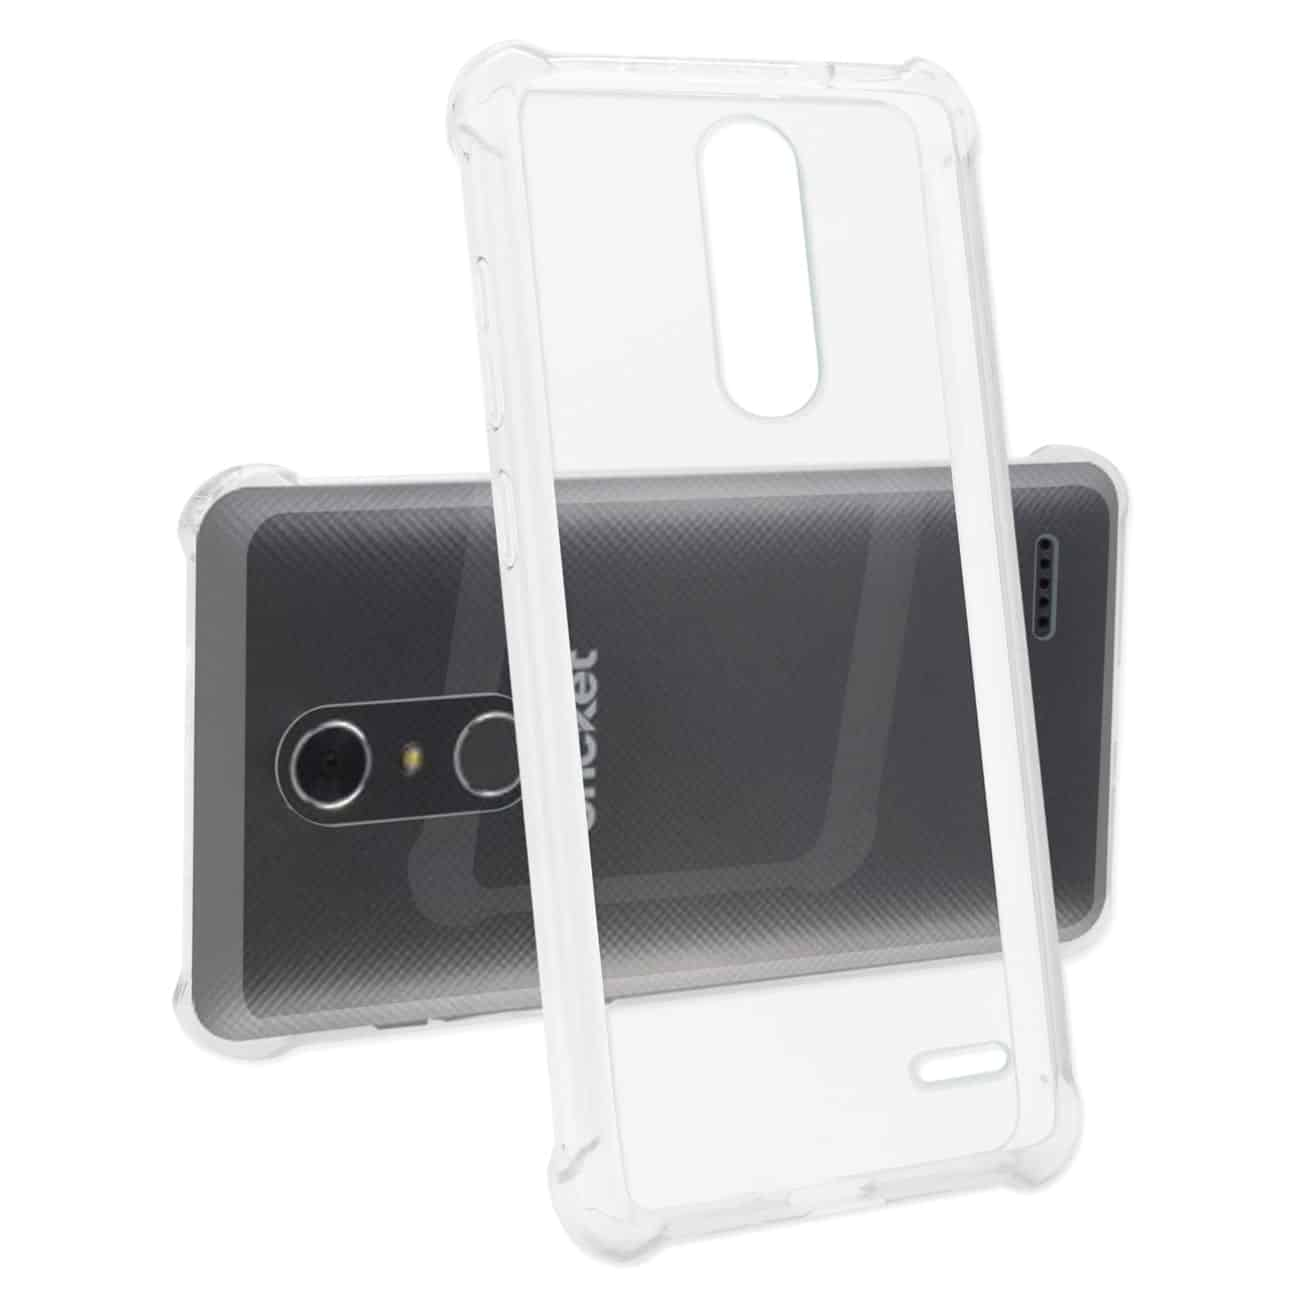 ZTE GRAND X4 BUMPER CASE WITH AIR CUSHION PROTECTION IN CLEAR